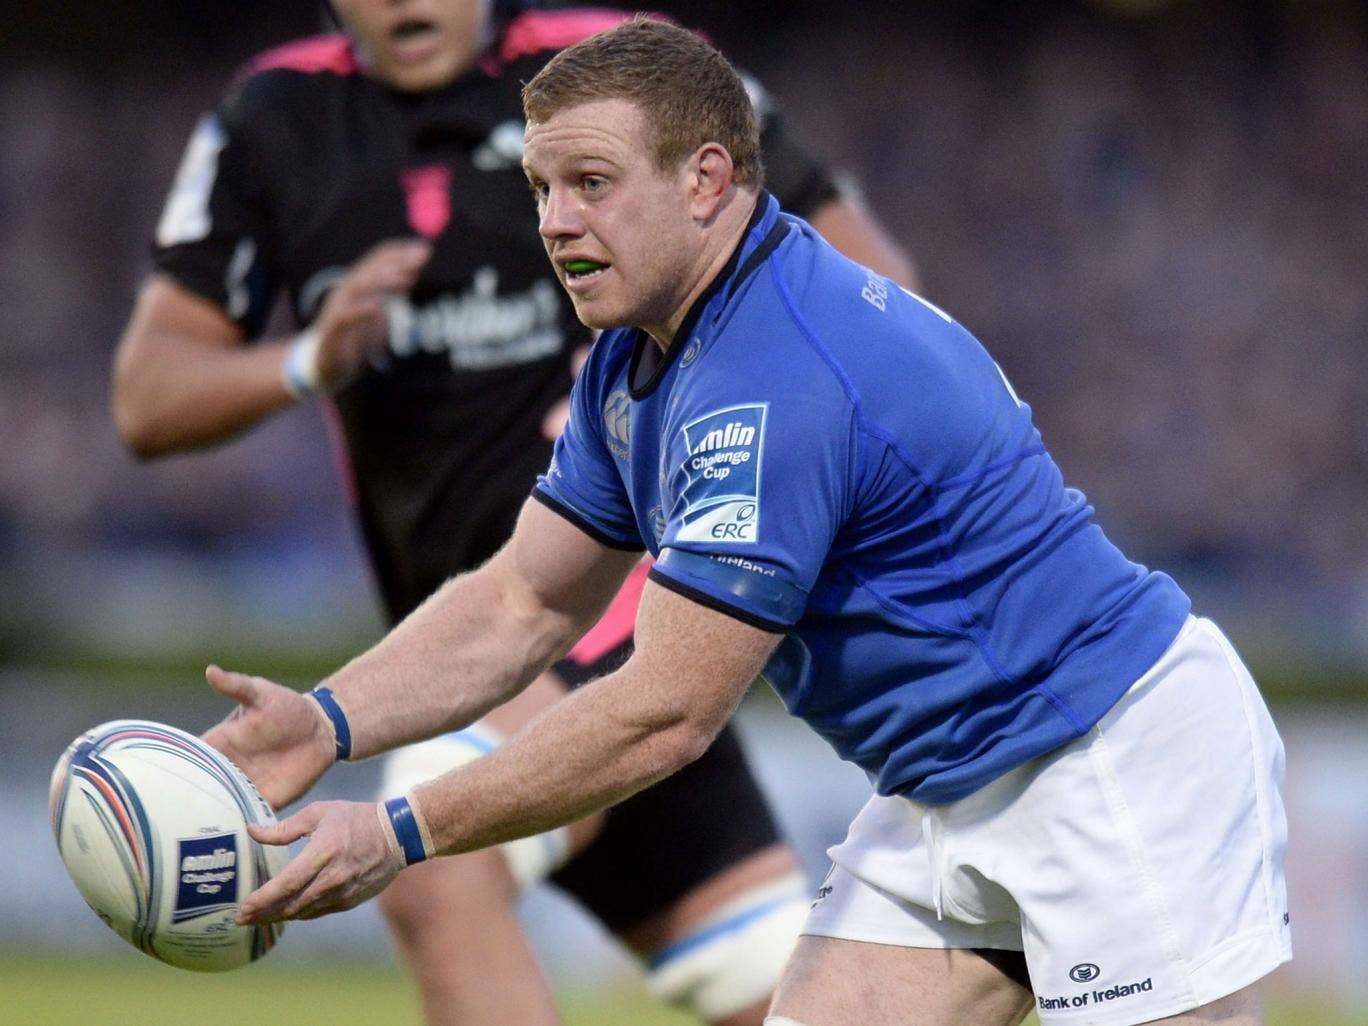 Sean Cronin ran in for Leinster's second try in a one-sided first half